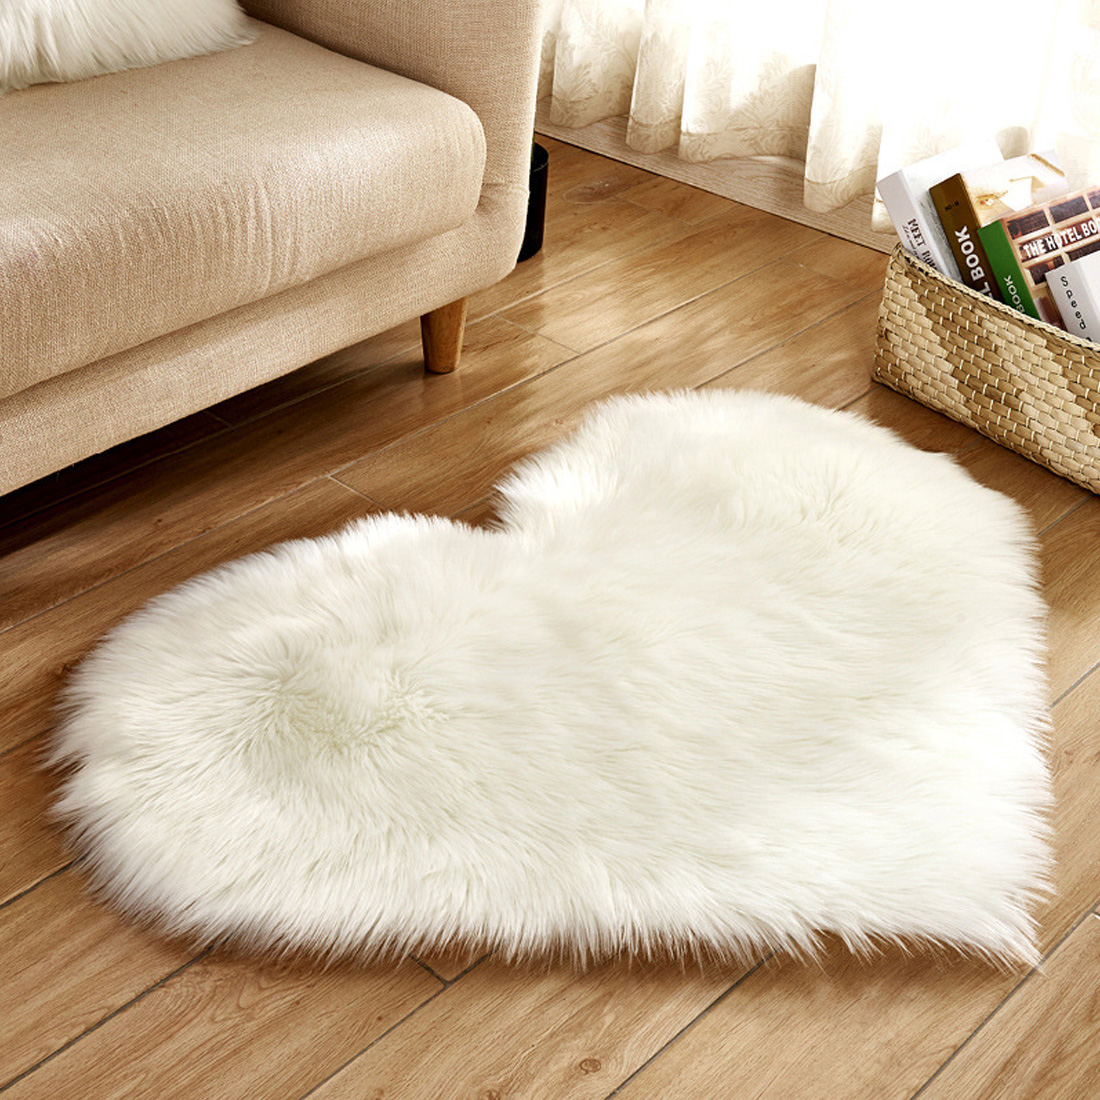 Mother & Kids Activity & Gear Baby Playmats Wool Imitation Sheepskin Rugs Faux Fur Bedroom Shaggy Carpet Window Mats Livingroom Decor Sofa Office Mats